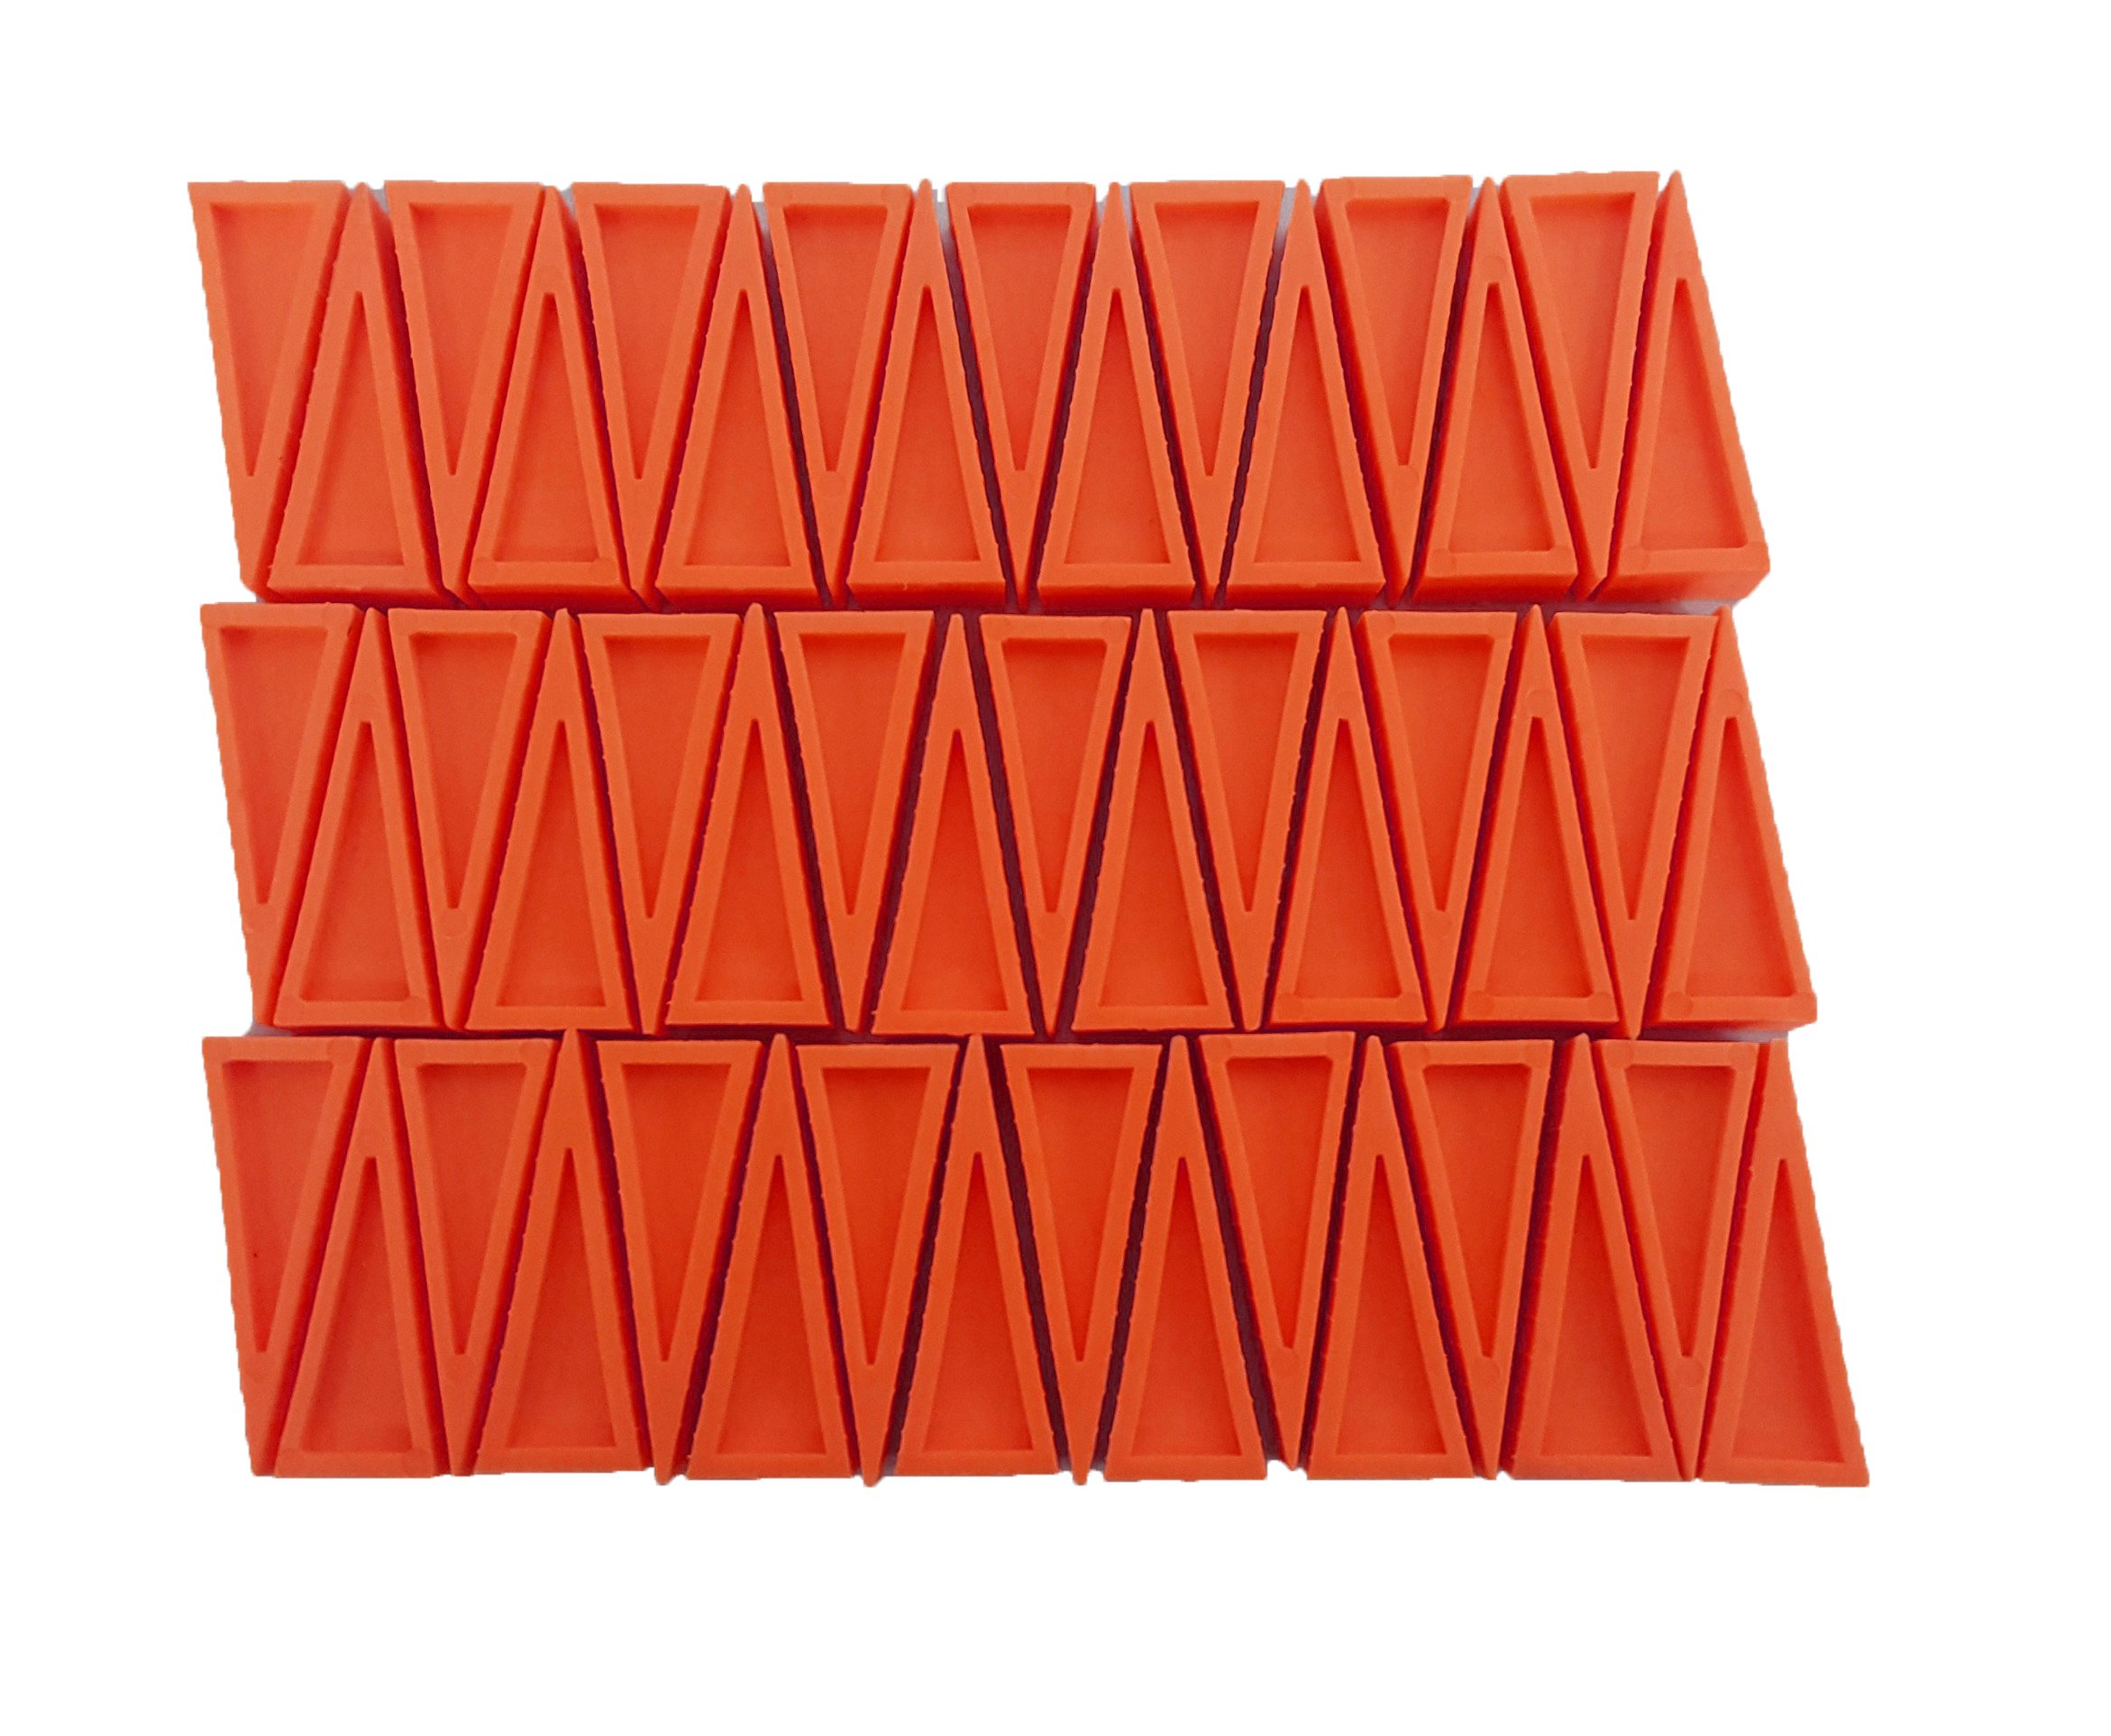 LINE2design Premium Sprinkler Wedges - Firefighter Door Stopper Heavy Duty Plastic Rubber Safety Doors Opener (Pack of 50, Orange)